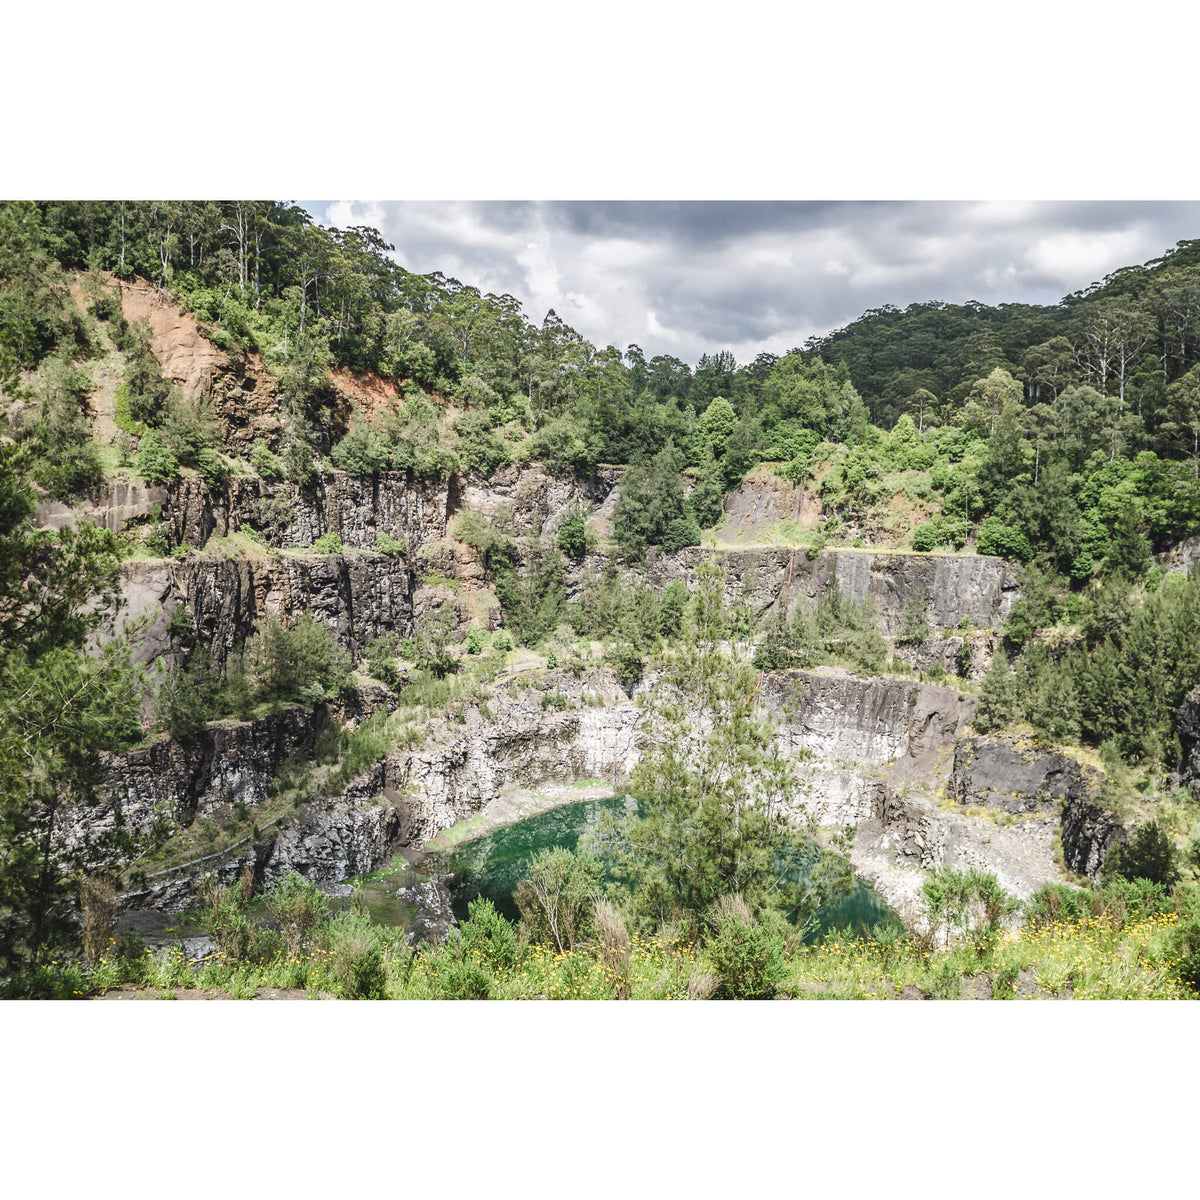 Quarry Void | Hornsby Quarry Fine Art Print - Lost Collective Shop